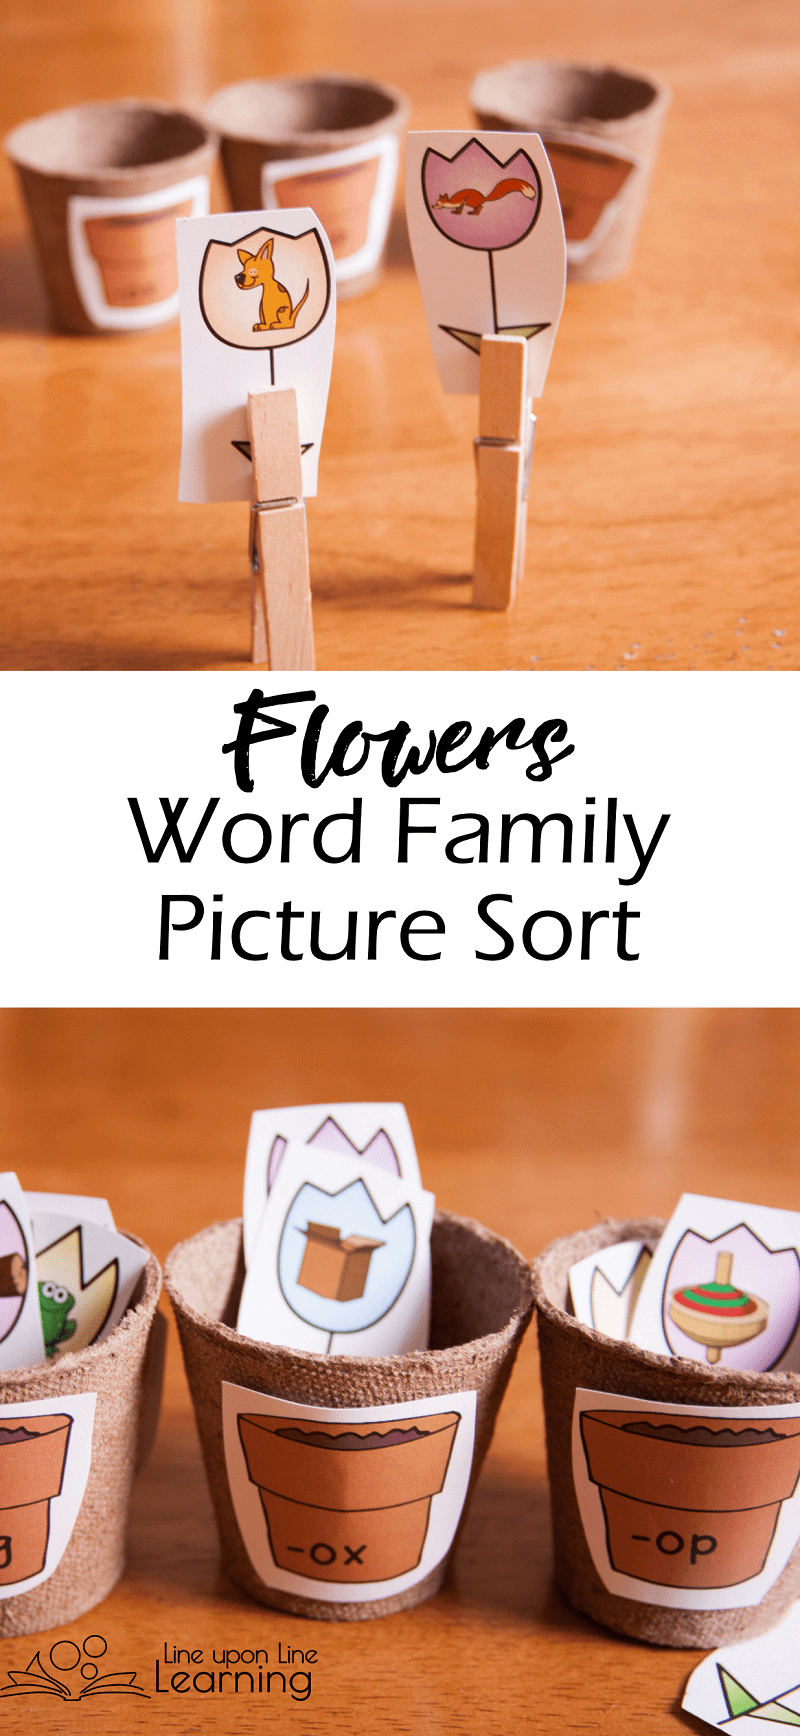 We used mini-flower pots to sort the image-flowers into the correct word family in this word family picture sort just perfect for spring!